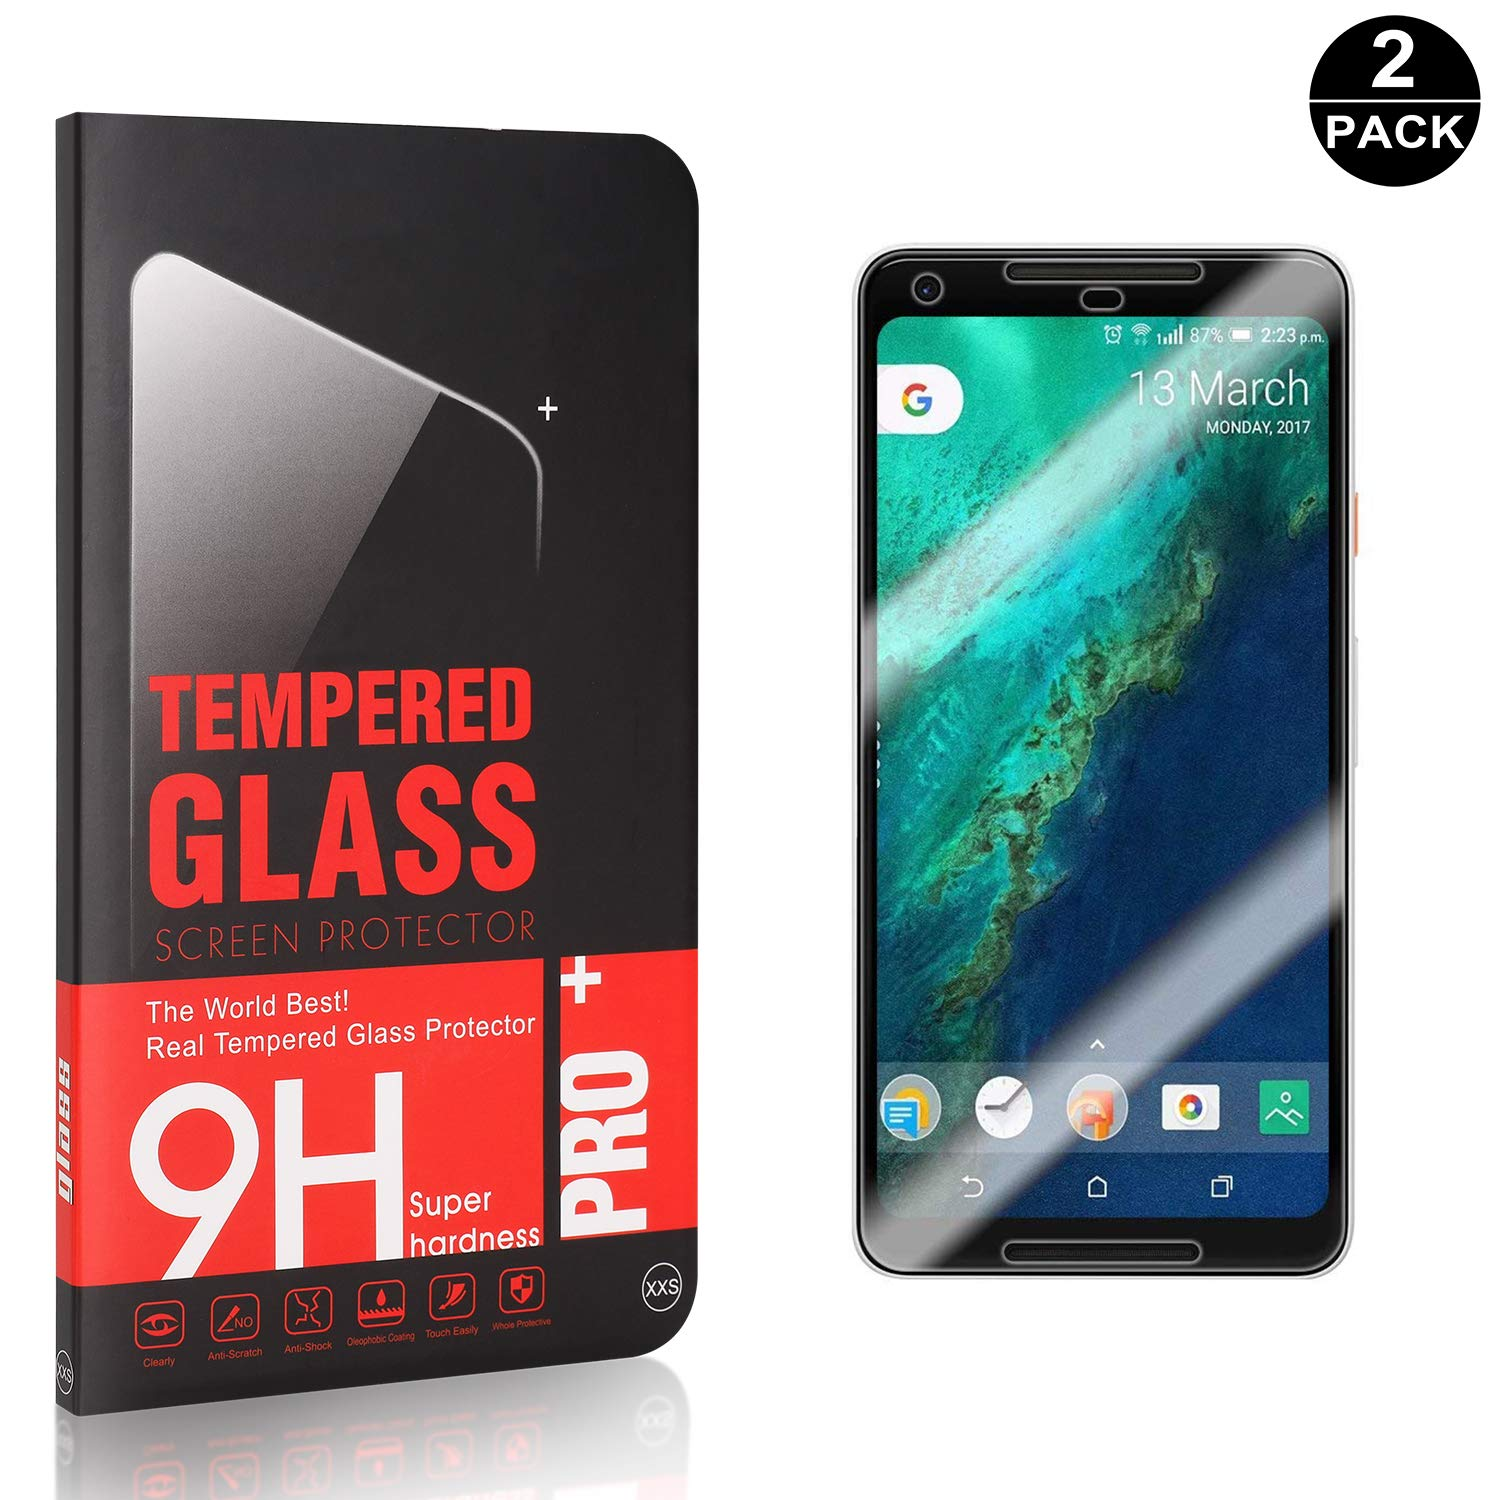 Anti Scratch Bubble Free 9H Hardness HD Tempered Glass Screen Protector Film for Google Pixel 2 Bear Village Screen Protector for Google Pixel 2 3 Pack